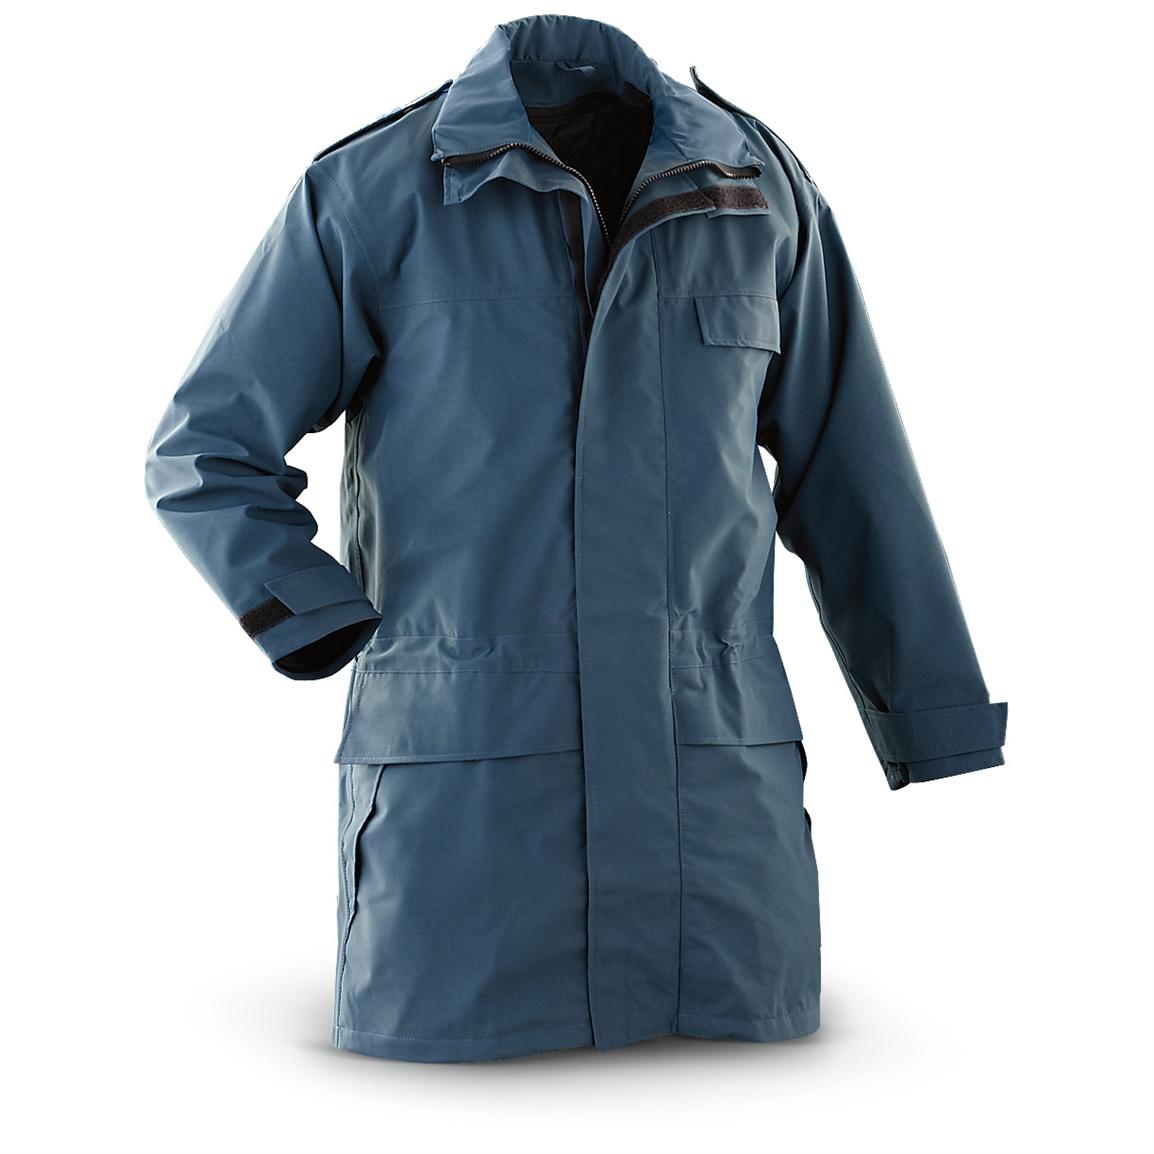 New British RAF Military Surplus GORE-TEX® Jacket with Liner, Blue